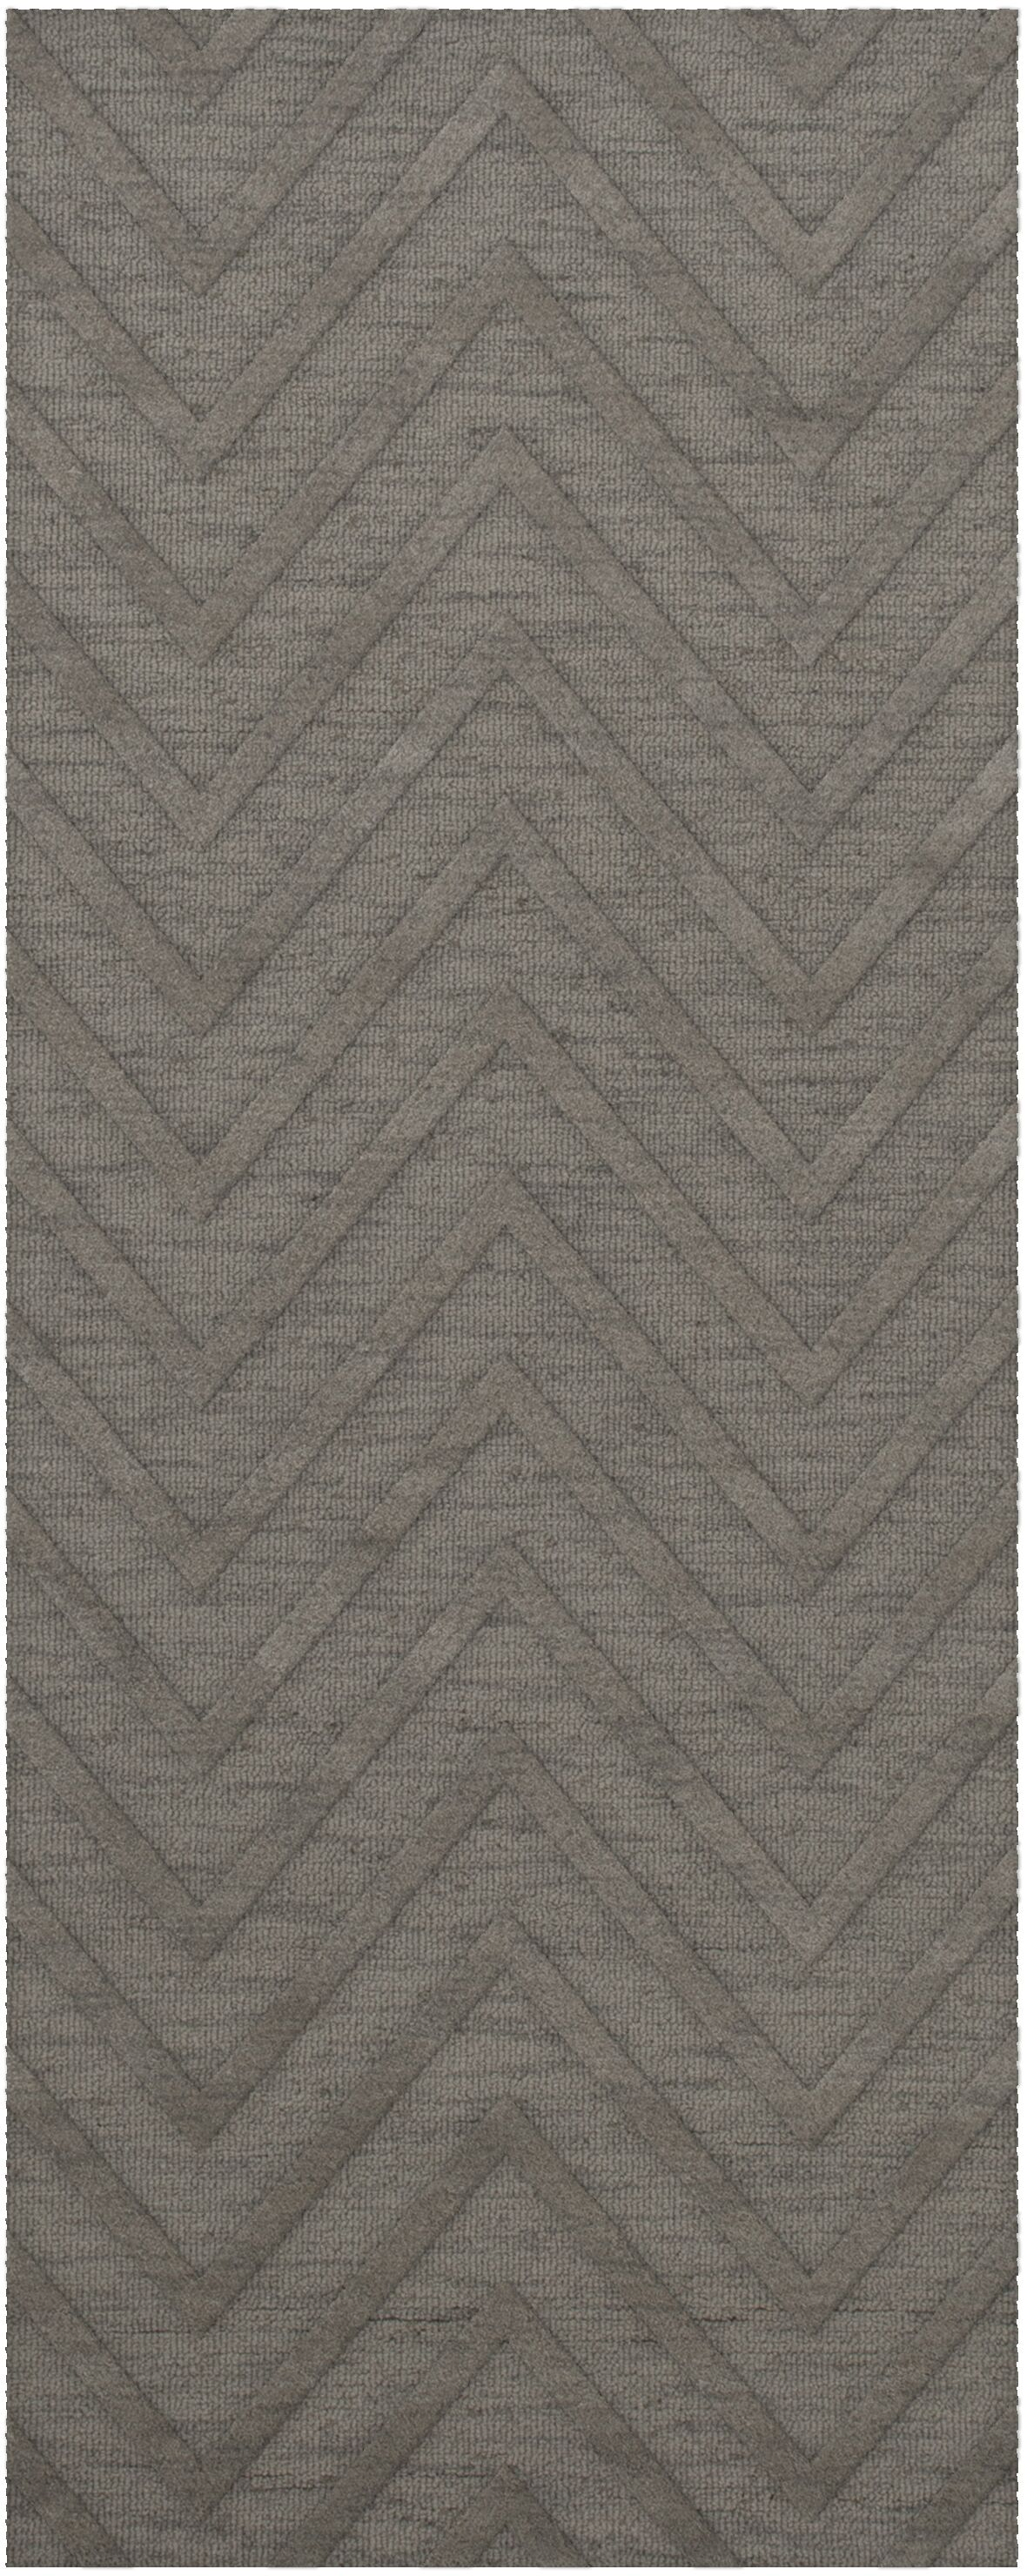 Dover Tufted Wool Silver Area Rug Rug Size: Runner 2'6